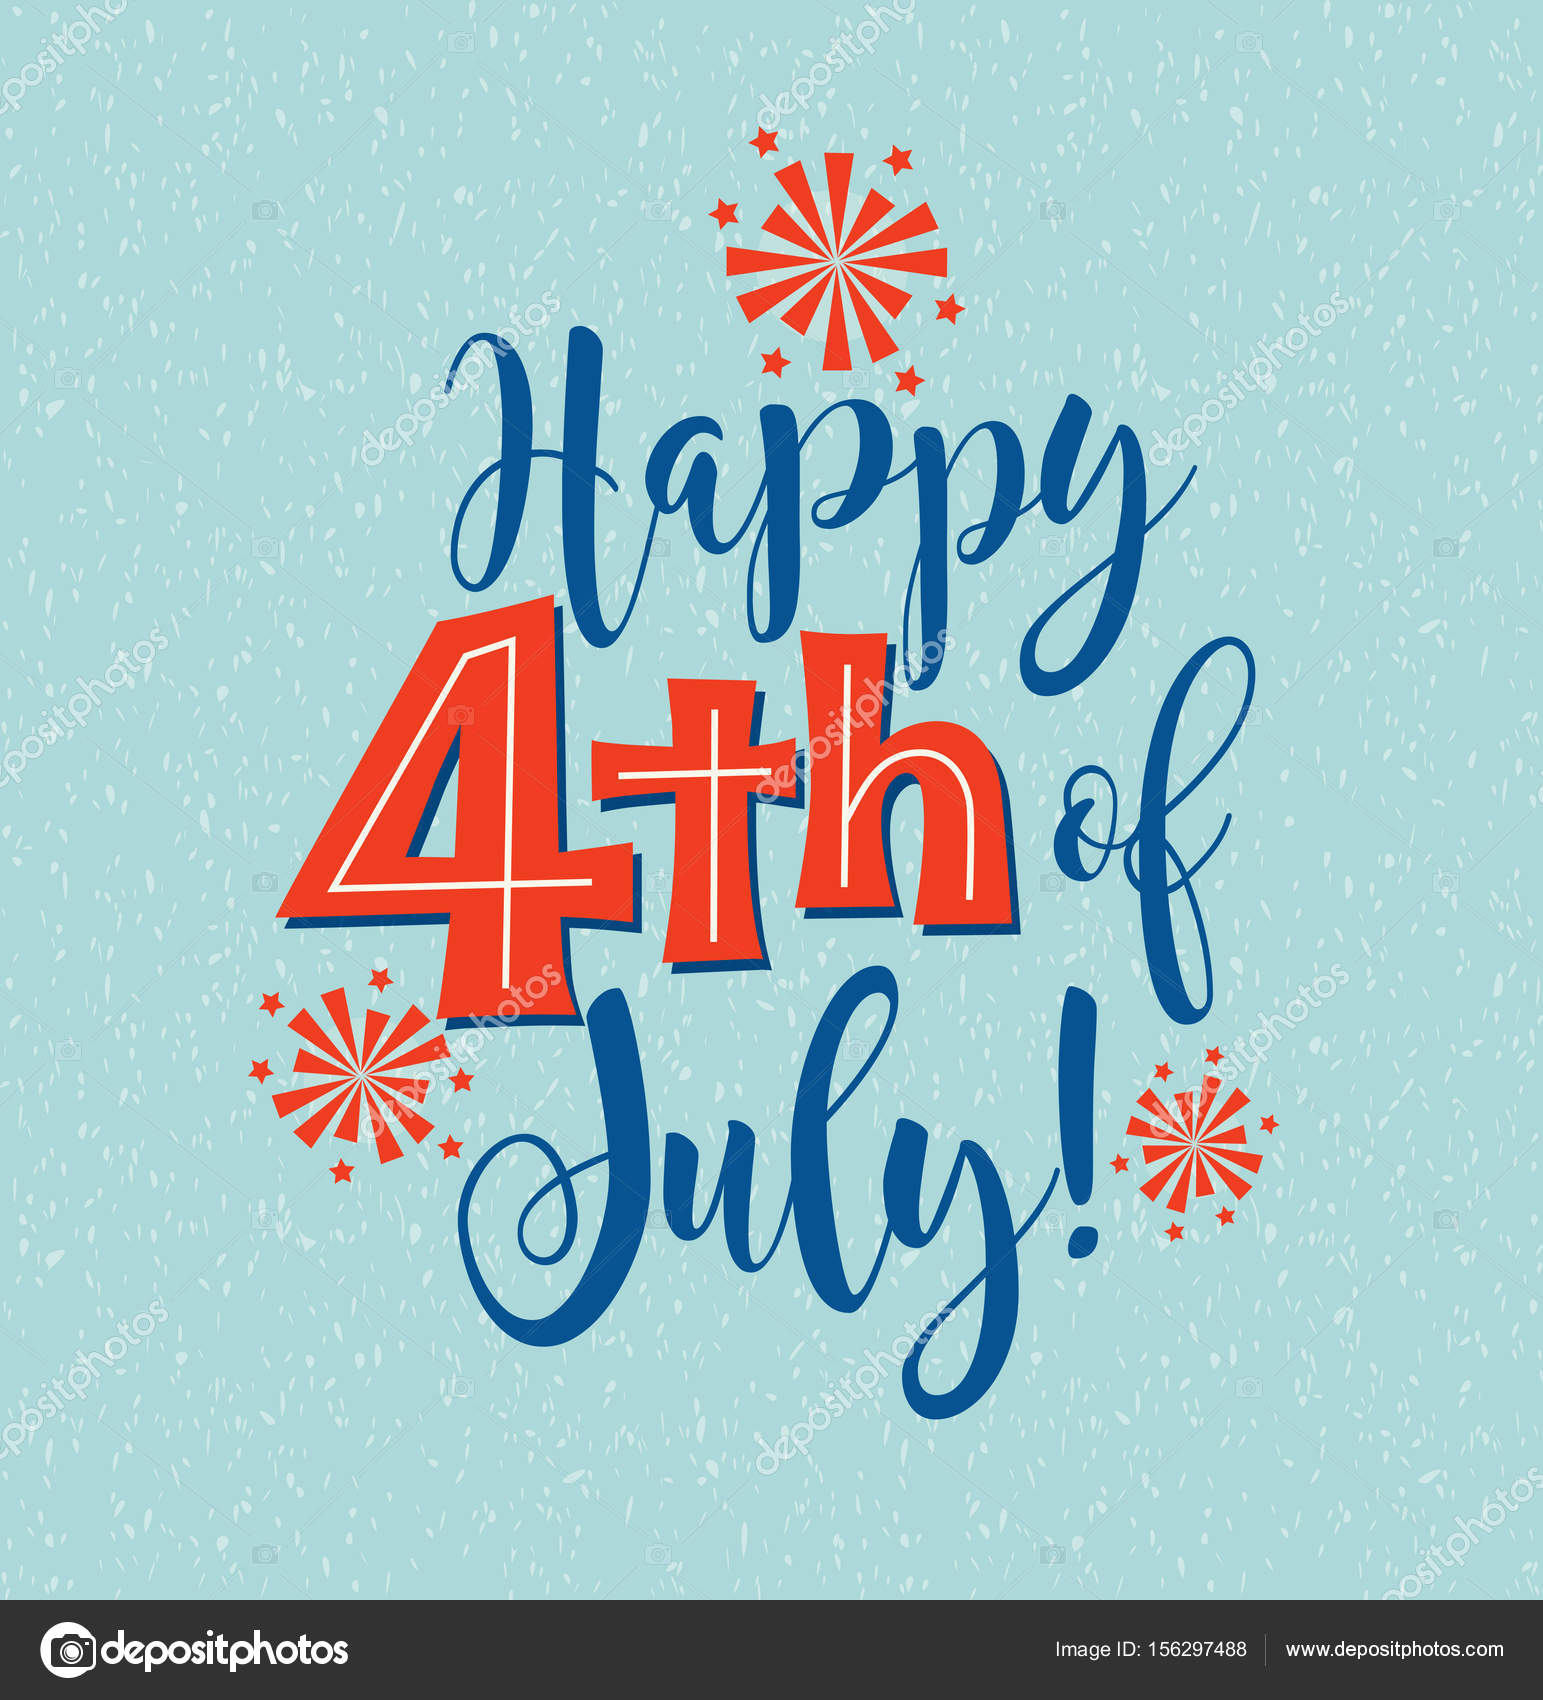 Retro Happy 4th Of July Typography Design For Greeting Cards Web